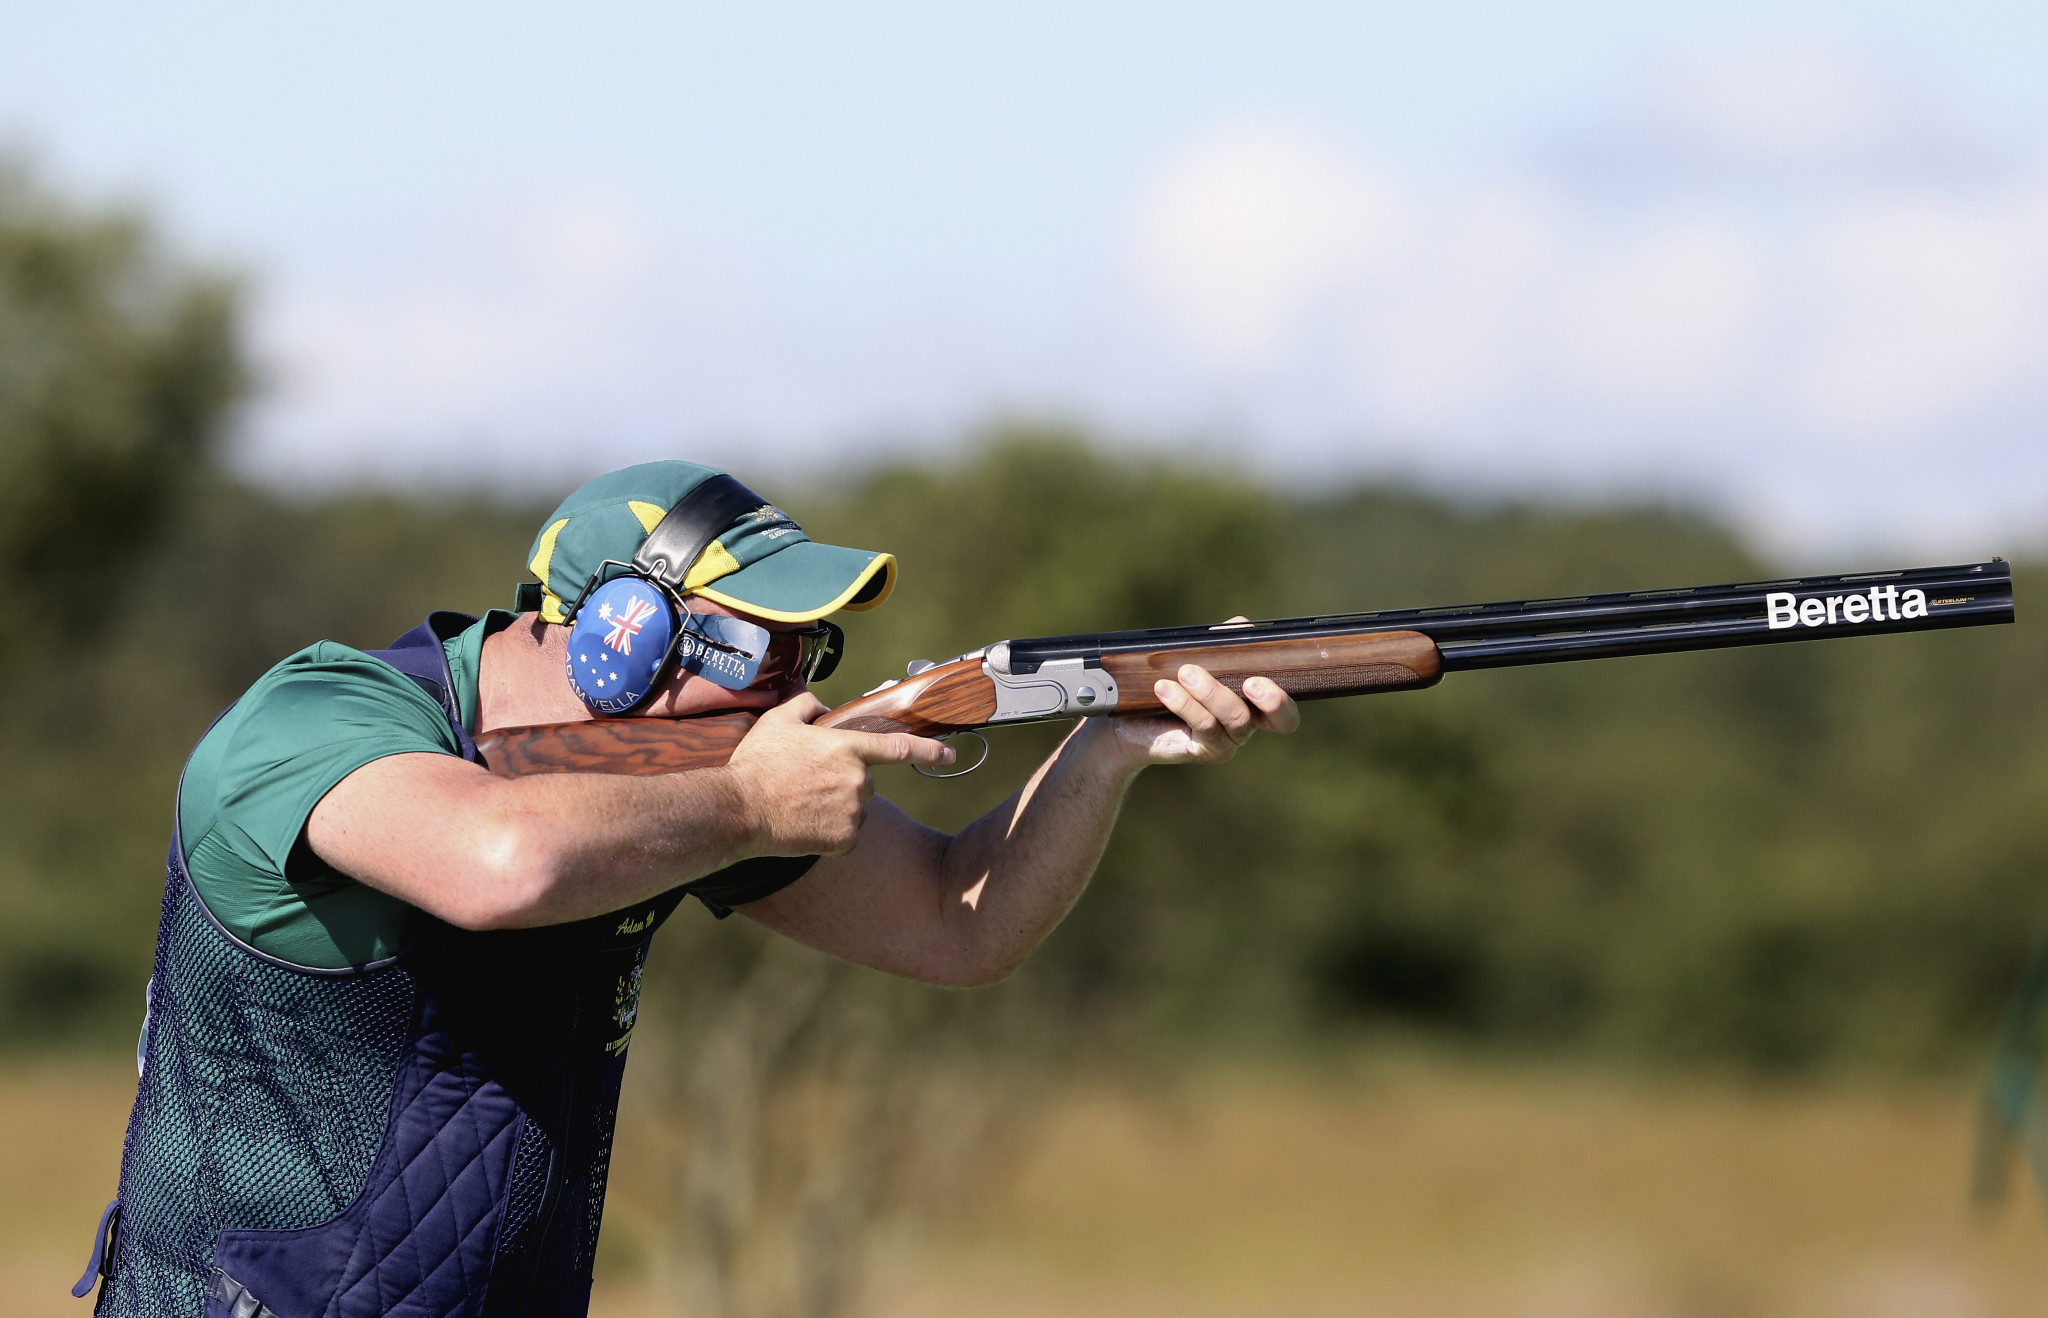 Australian Olympic shooting champion claims needs to sell medals to pay debts